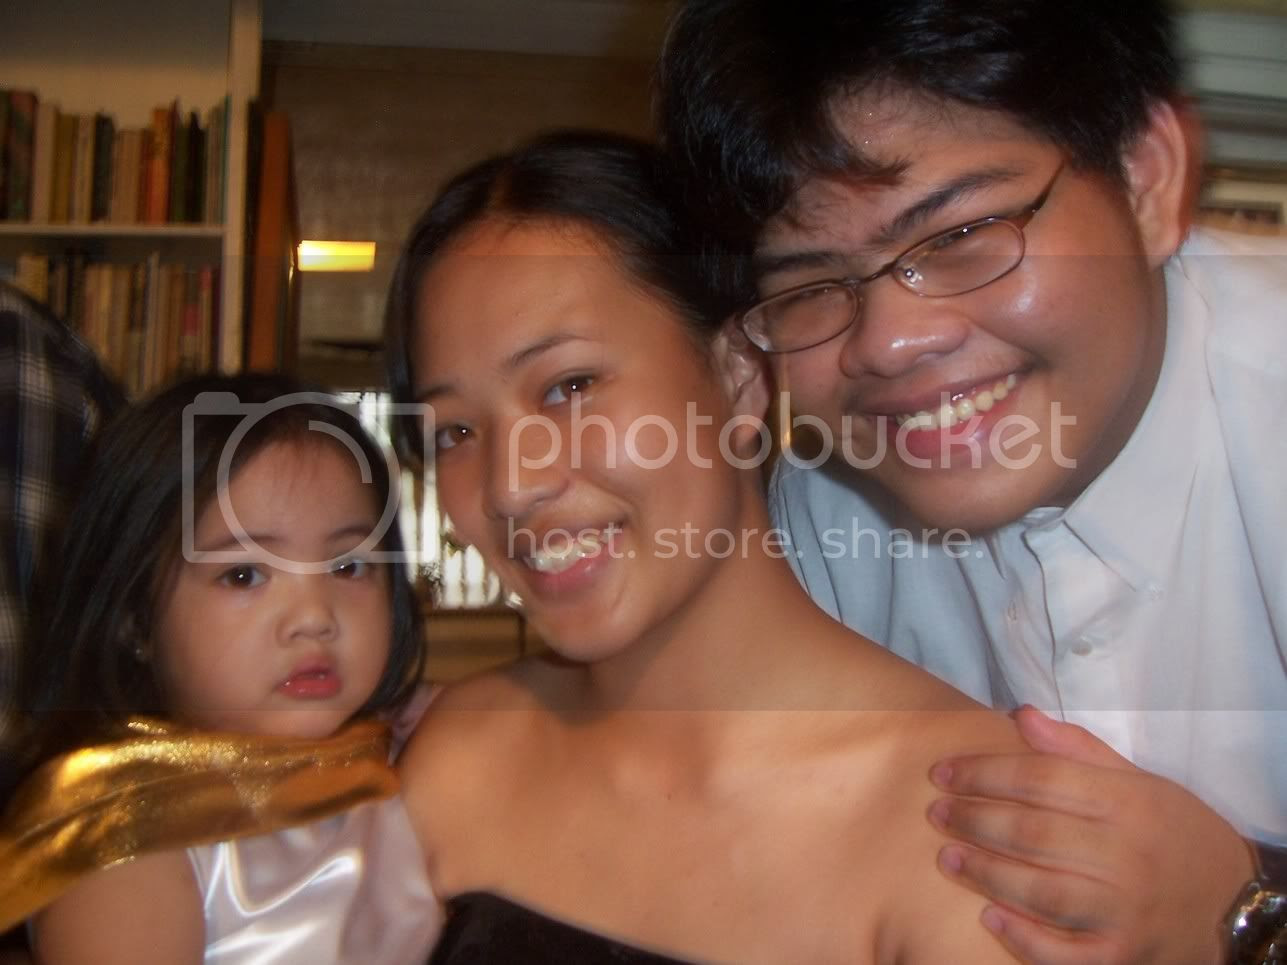 Brianna seems to have been adopted by Dhi and Sudoy, because... Image hosted by Photobucket